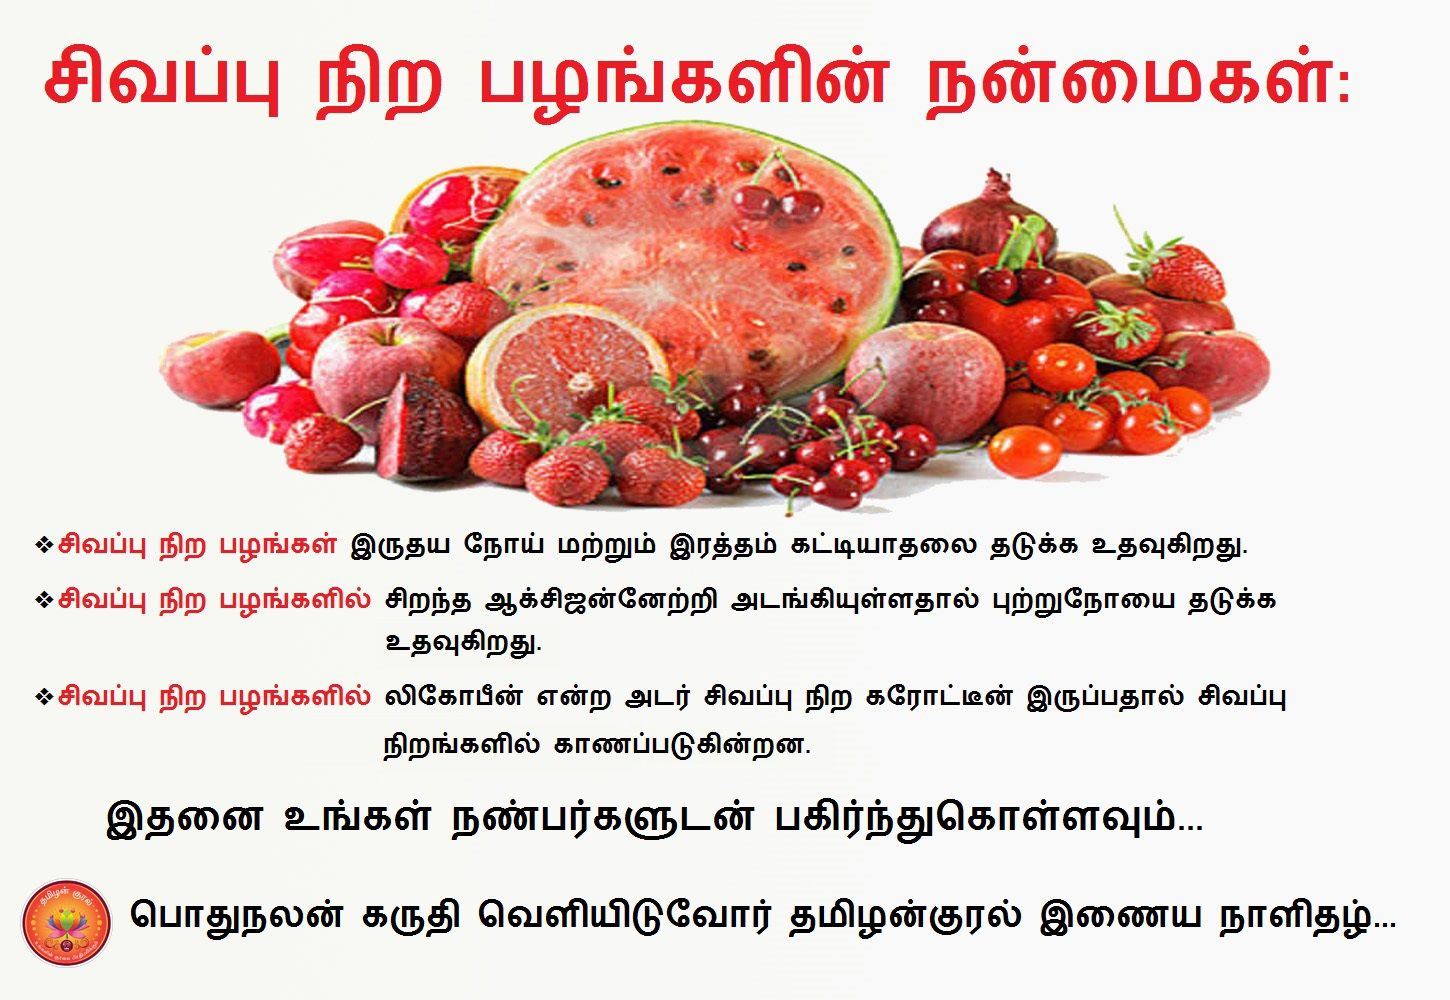 health benefits of red fruits in tamil | healthy diet plans